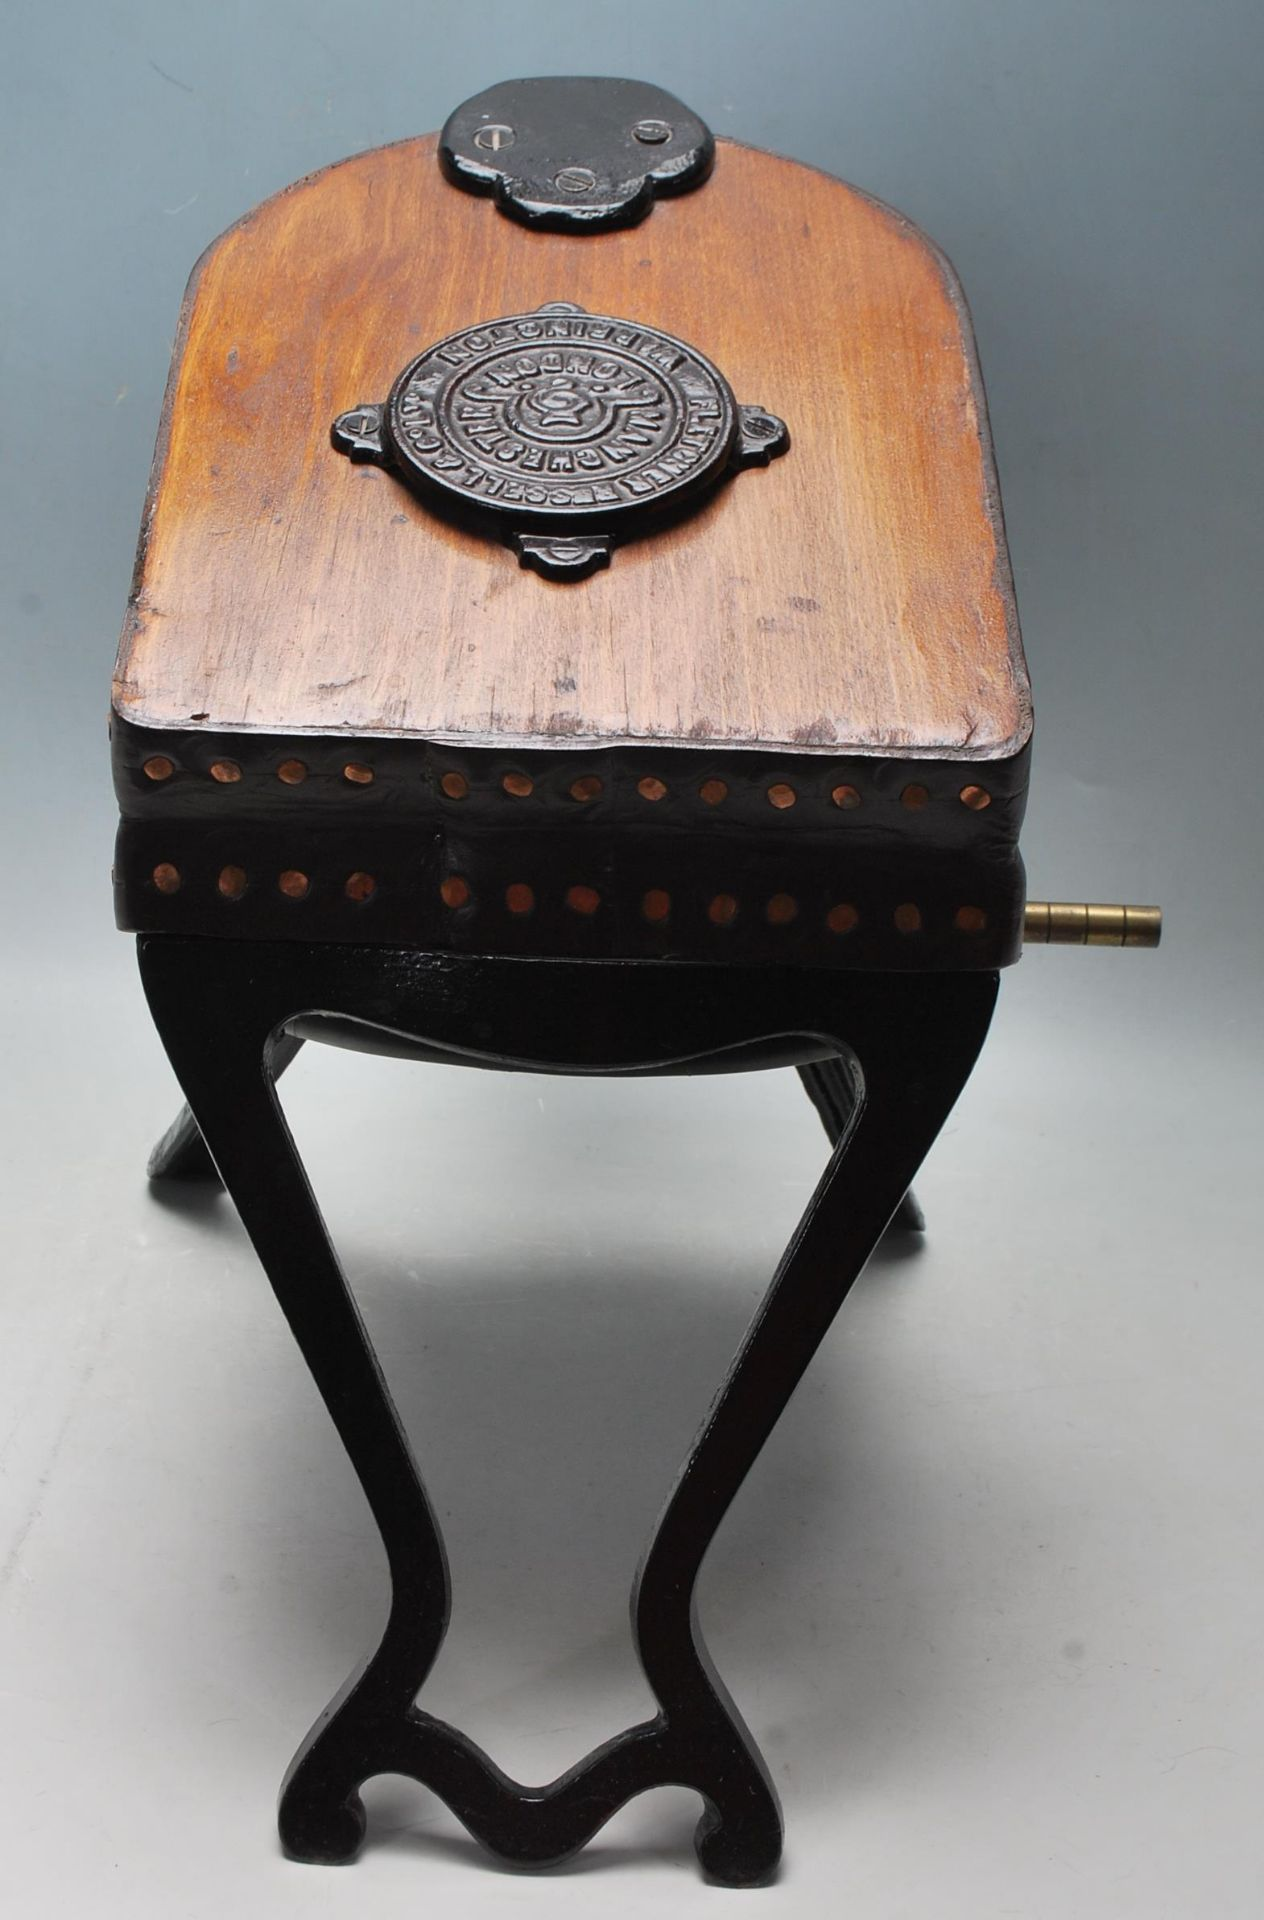 AN ANTIQUE EARLY 20TH OAK AND CAST IRON BELLOWS - Image 4 of 5